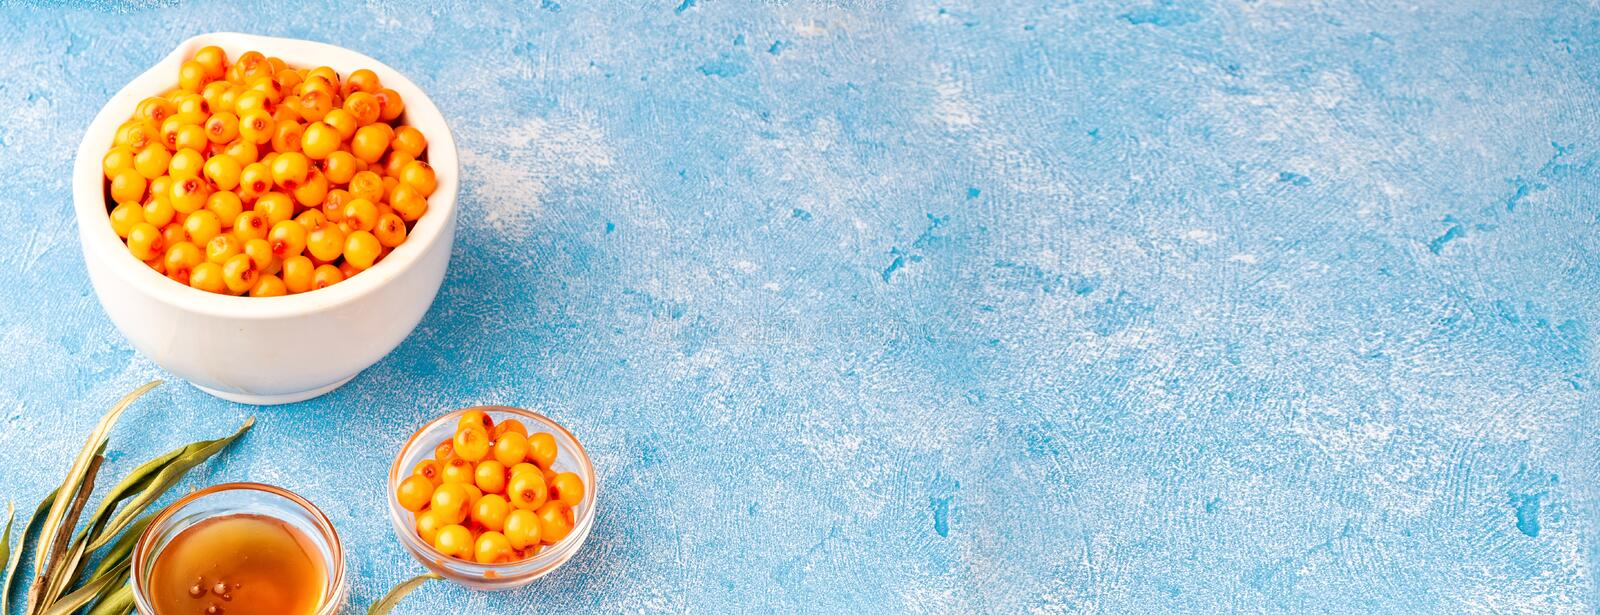 Sea-buckthorn berries in bowl and natural honey or sea buckthorn oil on blue background. Concept of agriculture harvest healthy diet alternative medicine royalty free stock images